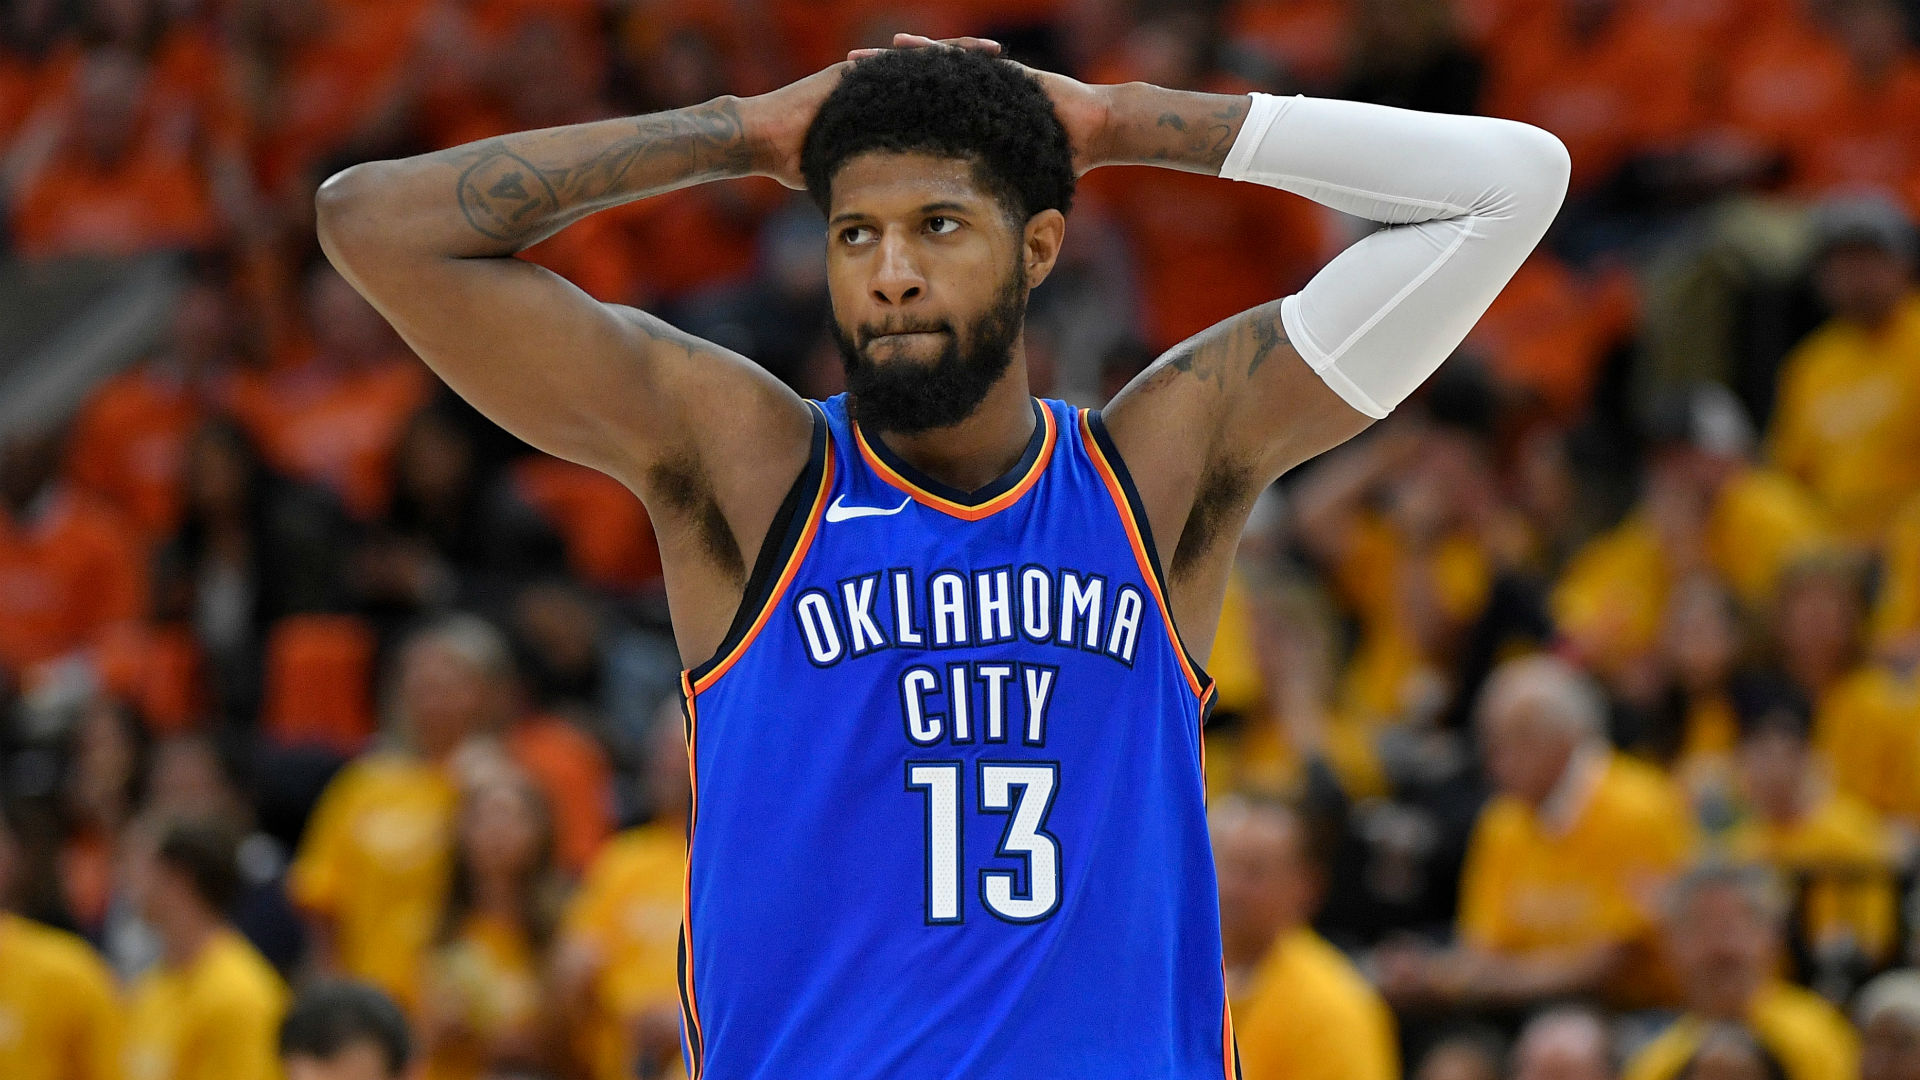 Thunder offseason outlook: How will OKC handle Paul George, Carmelo Anthony after early playoff exit ...